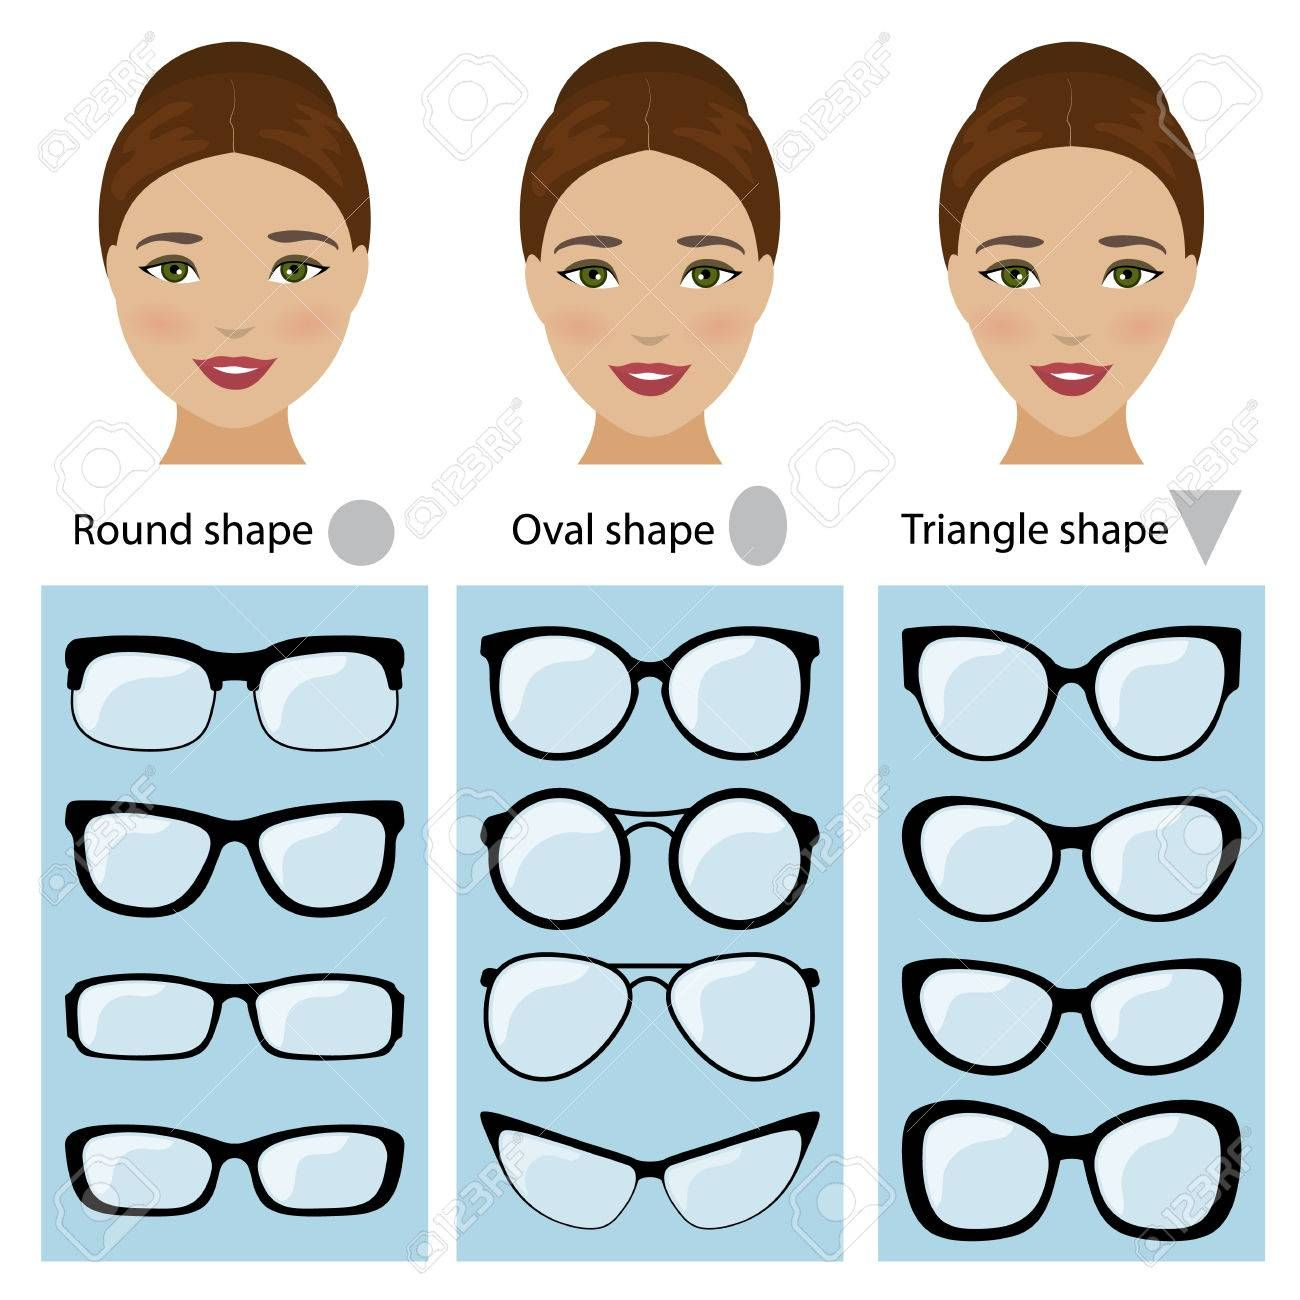 Photo of Spectacle frames shapes for different types of women face shapes